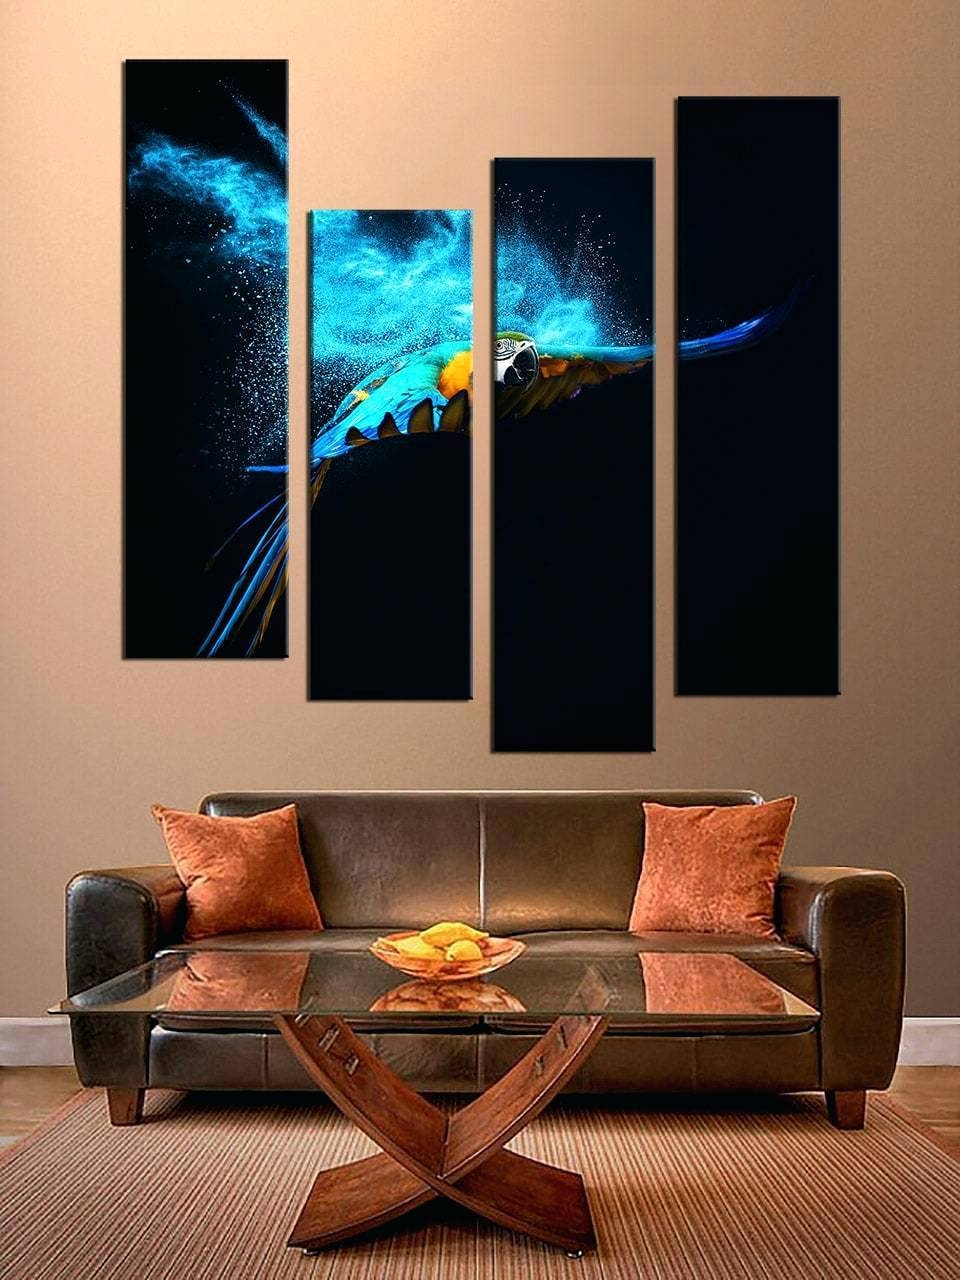 Wall Ideas : Multi Piece Wall Art Uk Dining Room Wall Decor 5 With Regard To Recent 3 Piece Beach Wall Art (View 24 of 30)